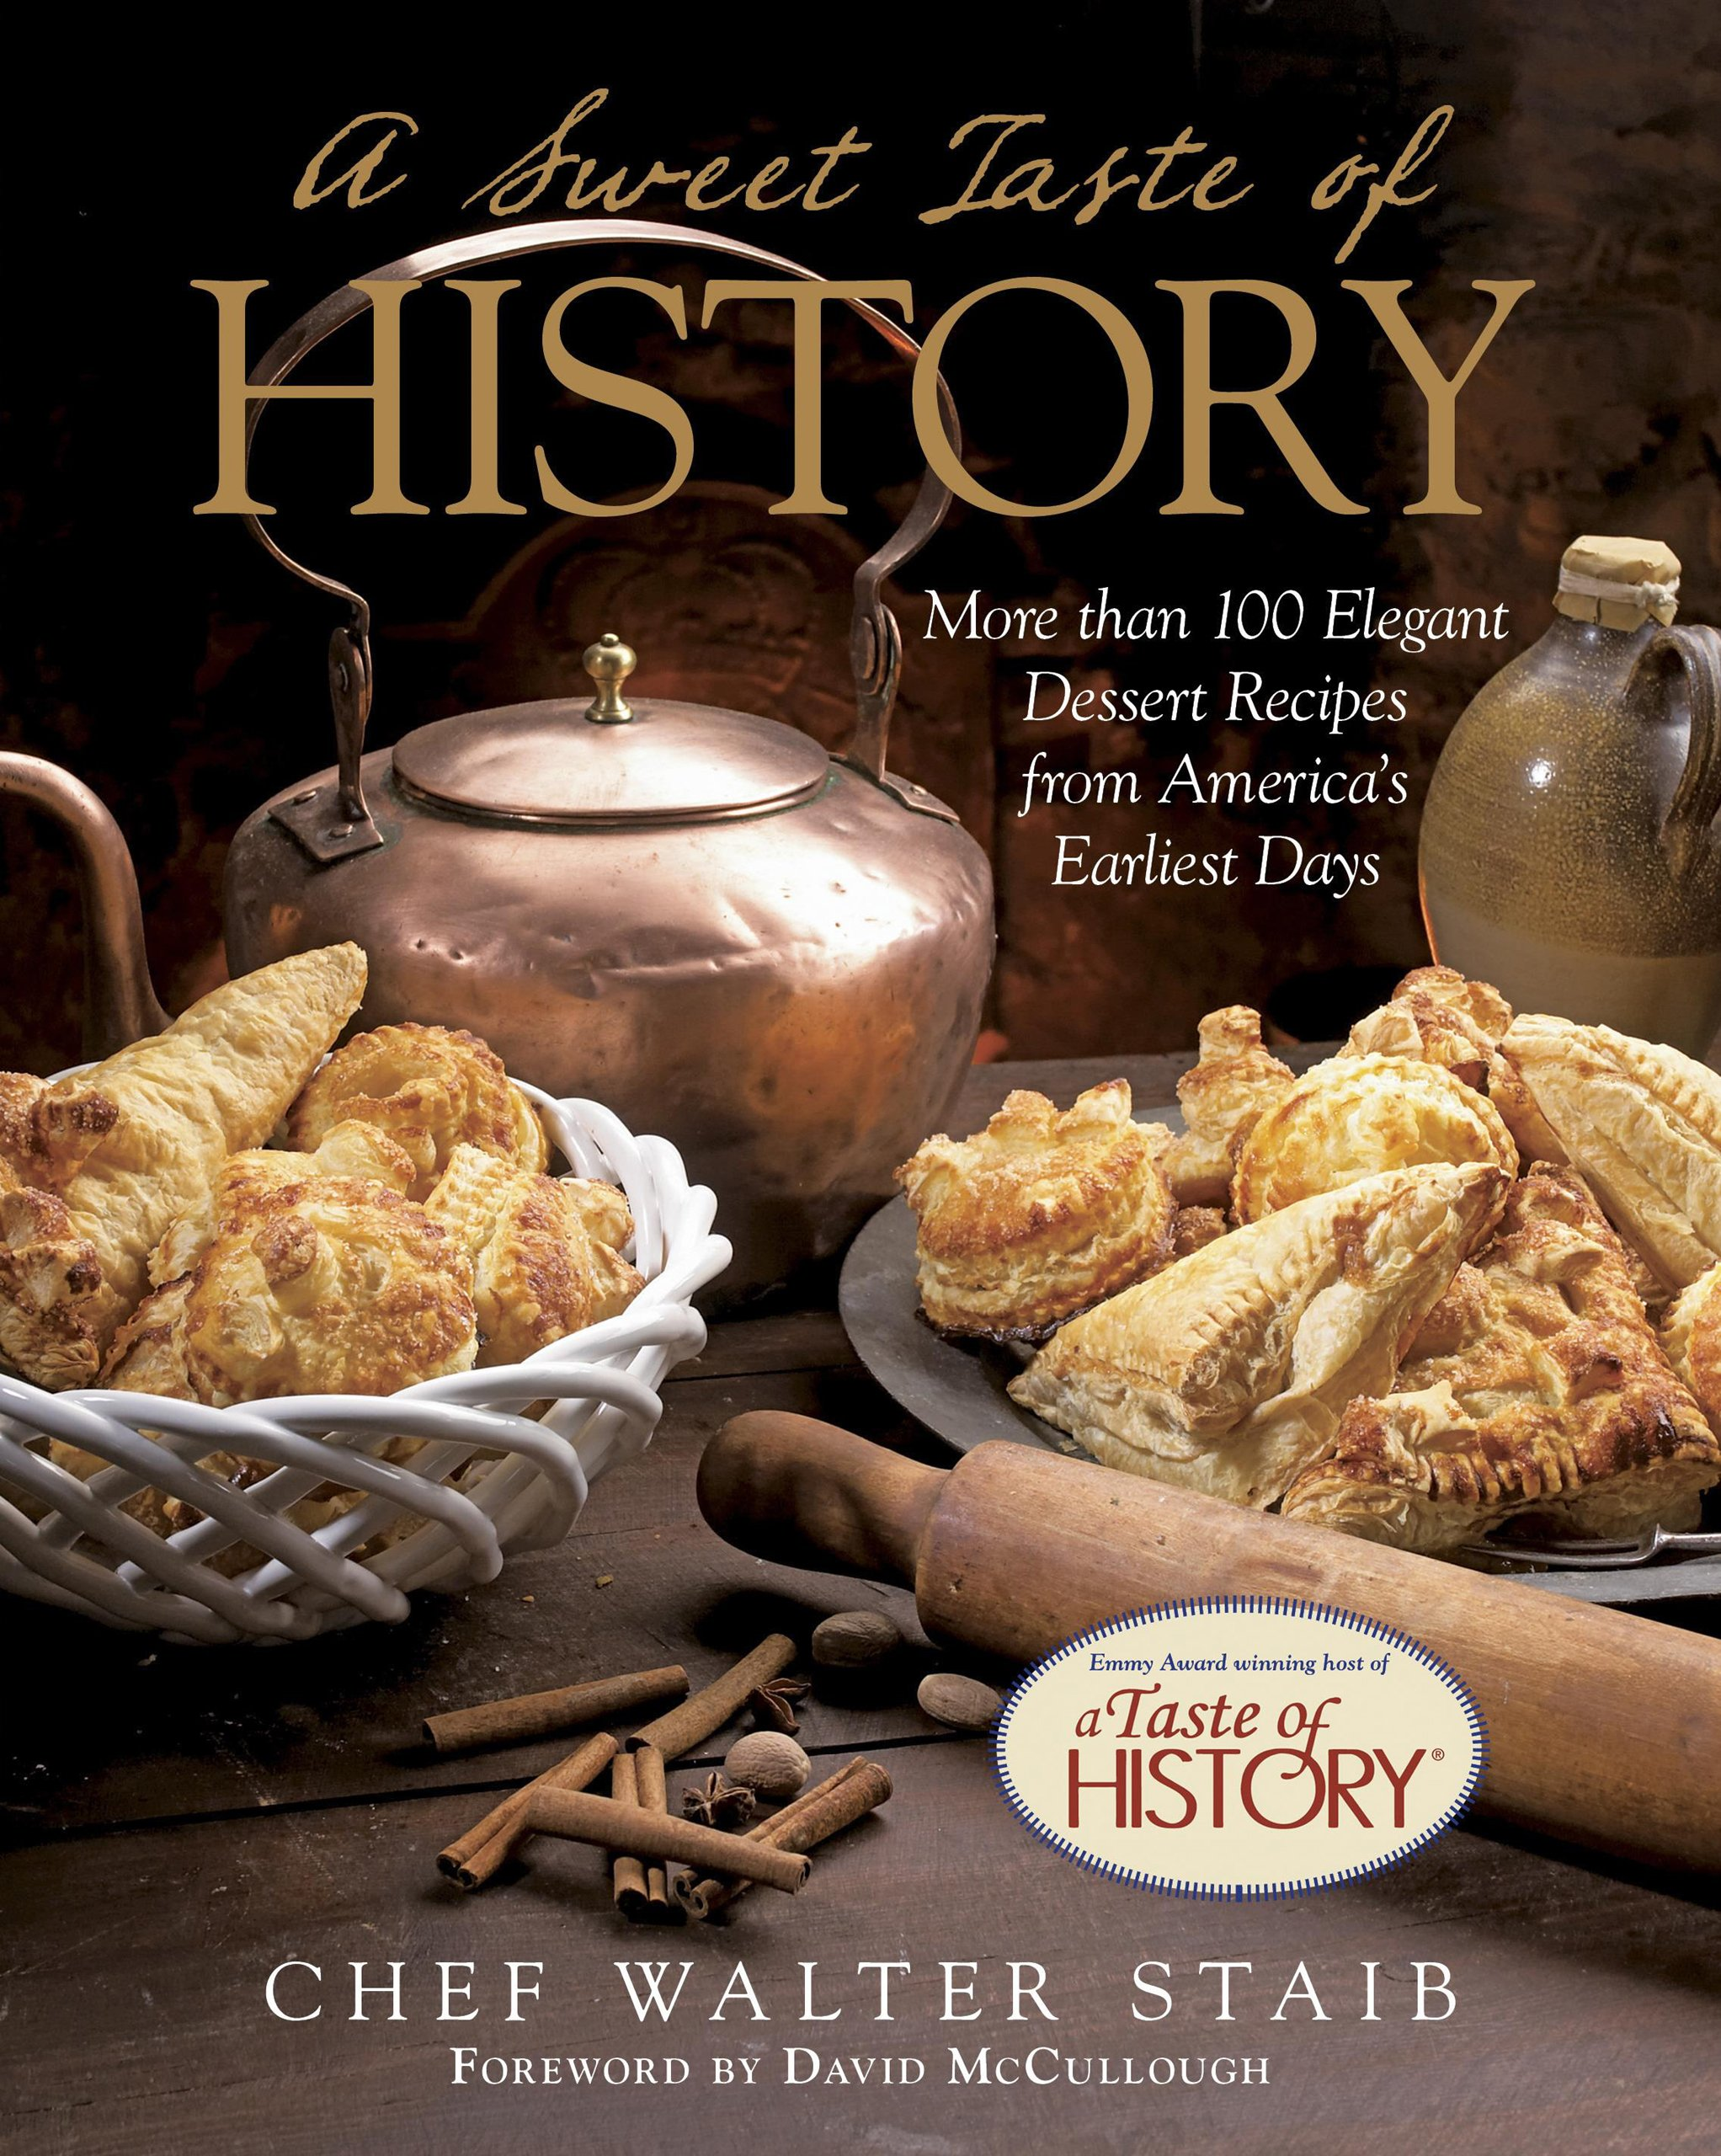 Sweet taste of history more than 100 elegant dessert recipes from sweet taste of history more than 100 elegant dessert recipes from americas earliest days walter staib david mccullough 0660813791436 amazon books forumfinder Choice Image